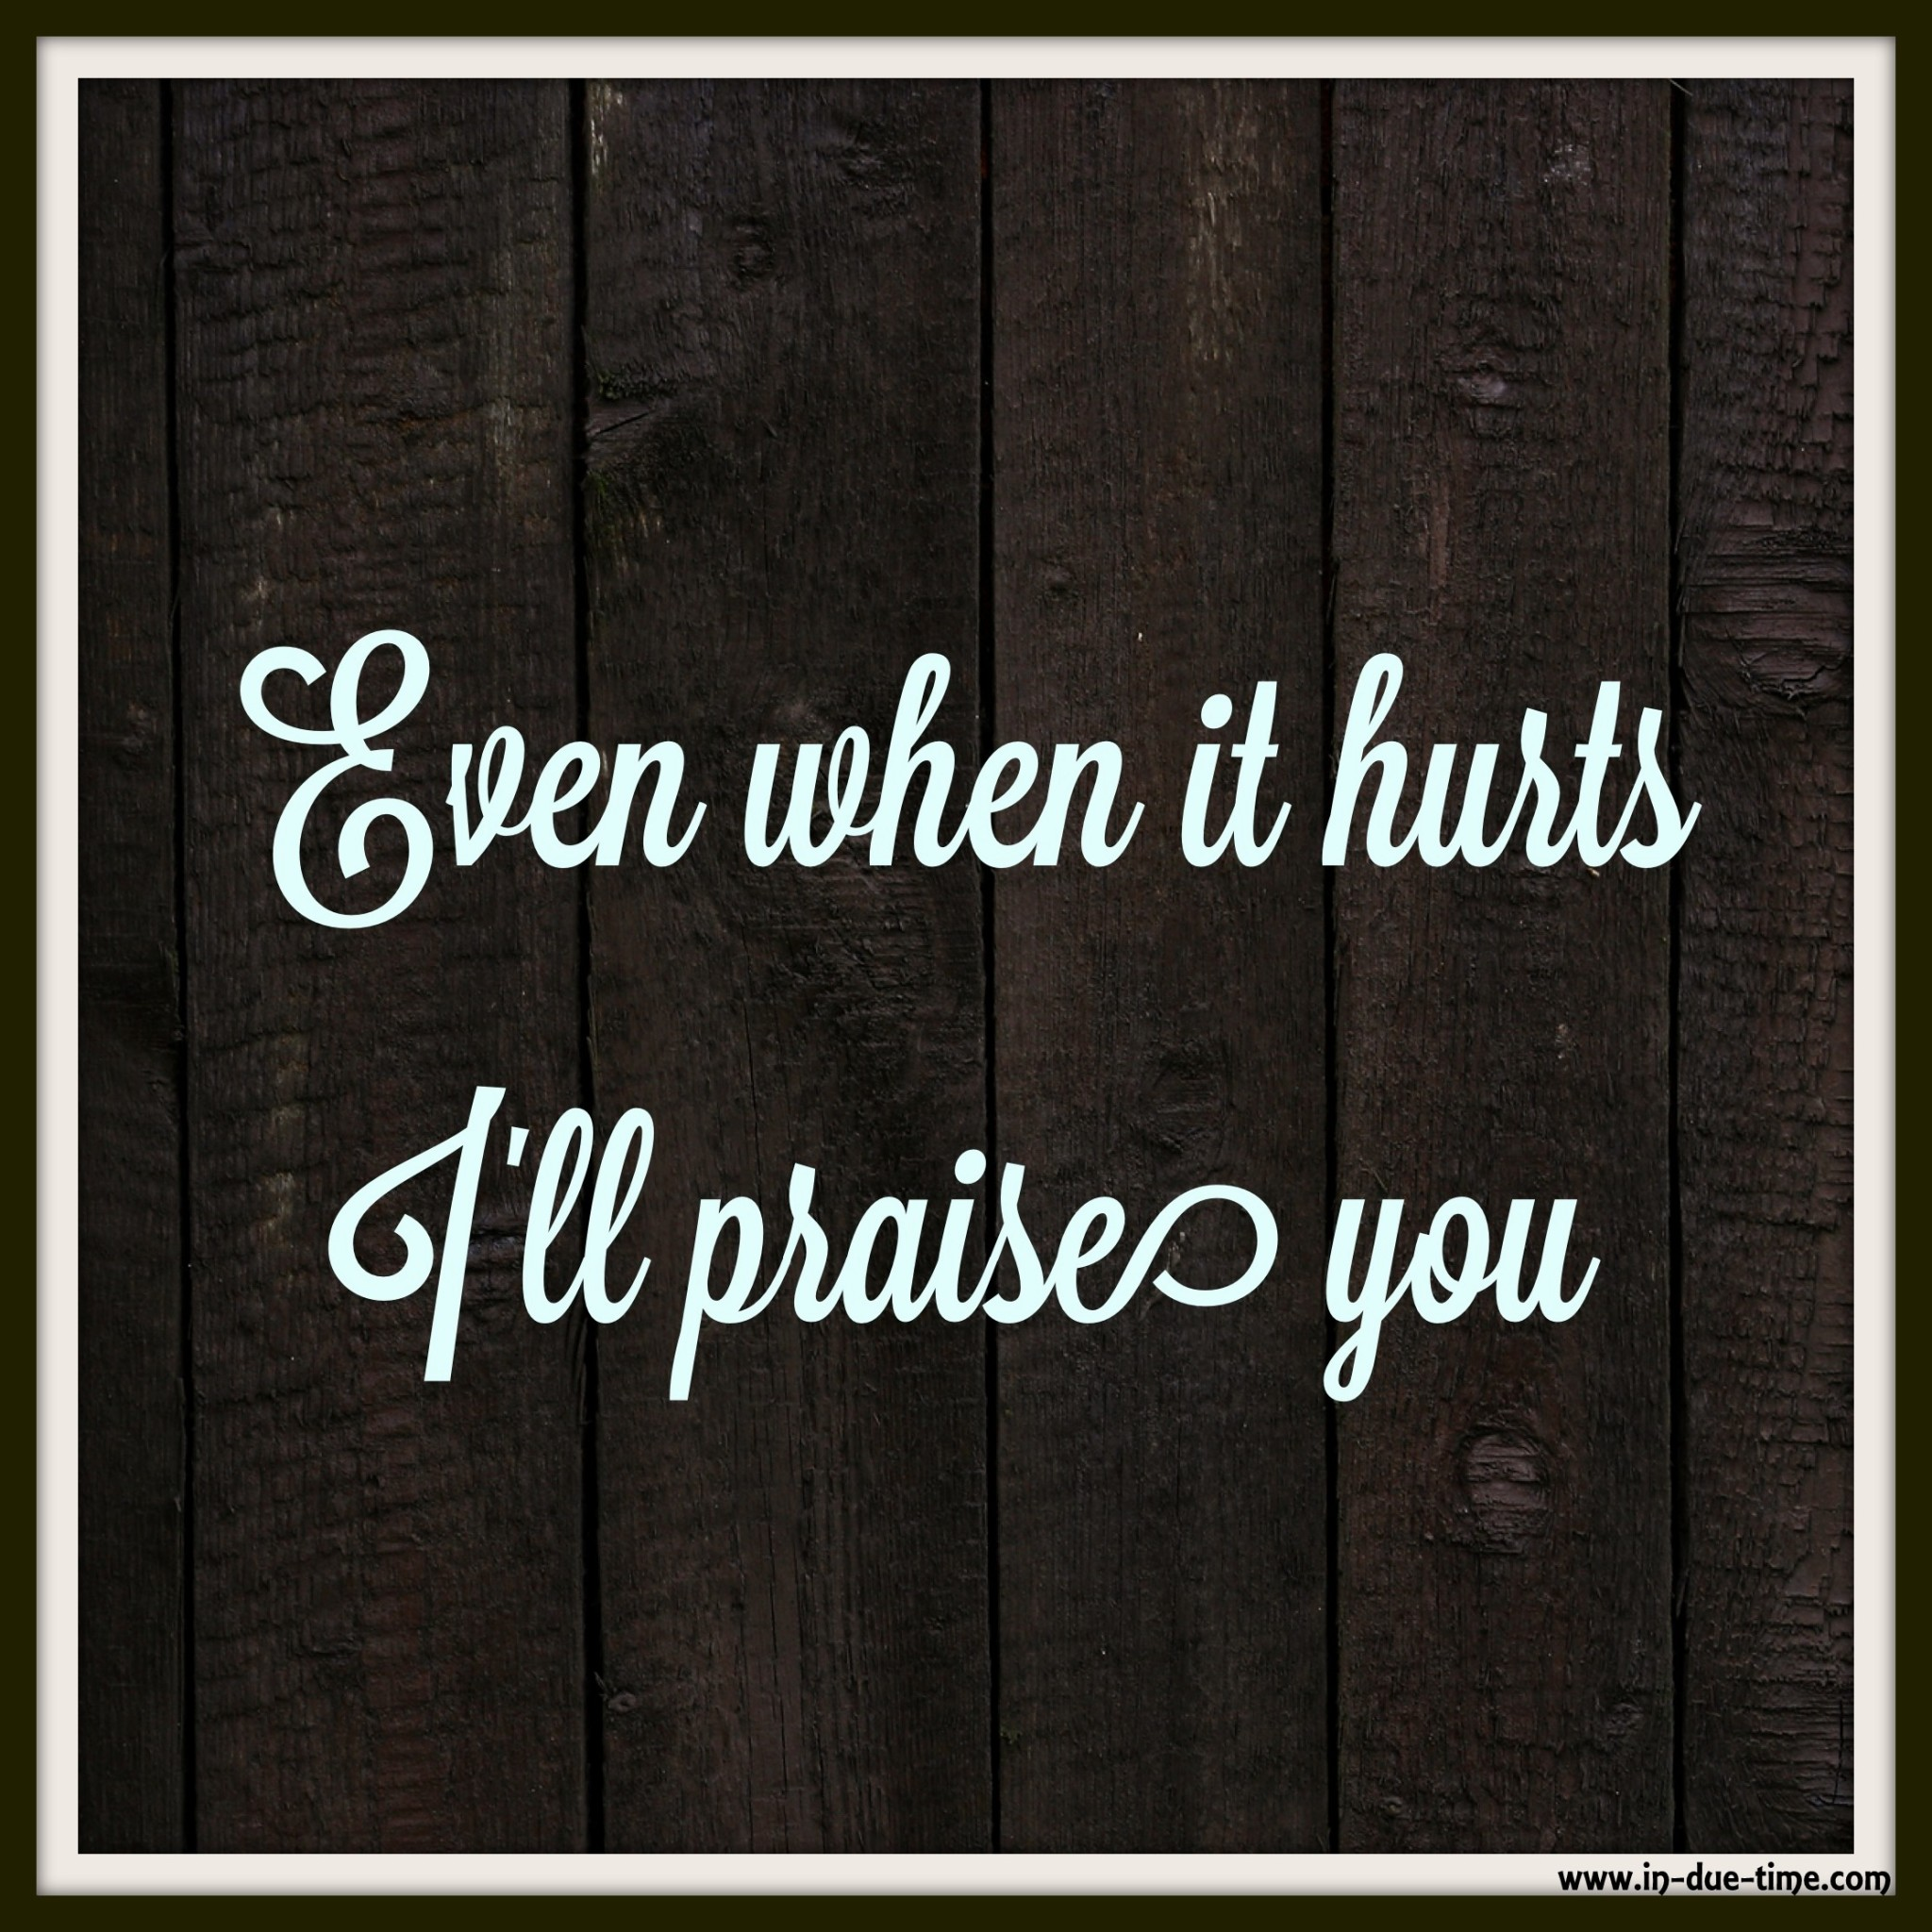 Even When it hurts - Hillsong Empire